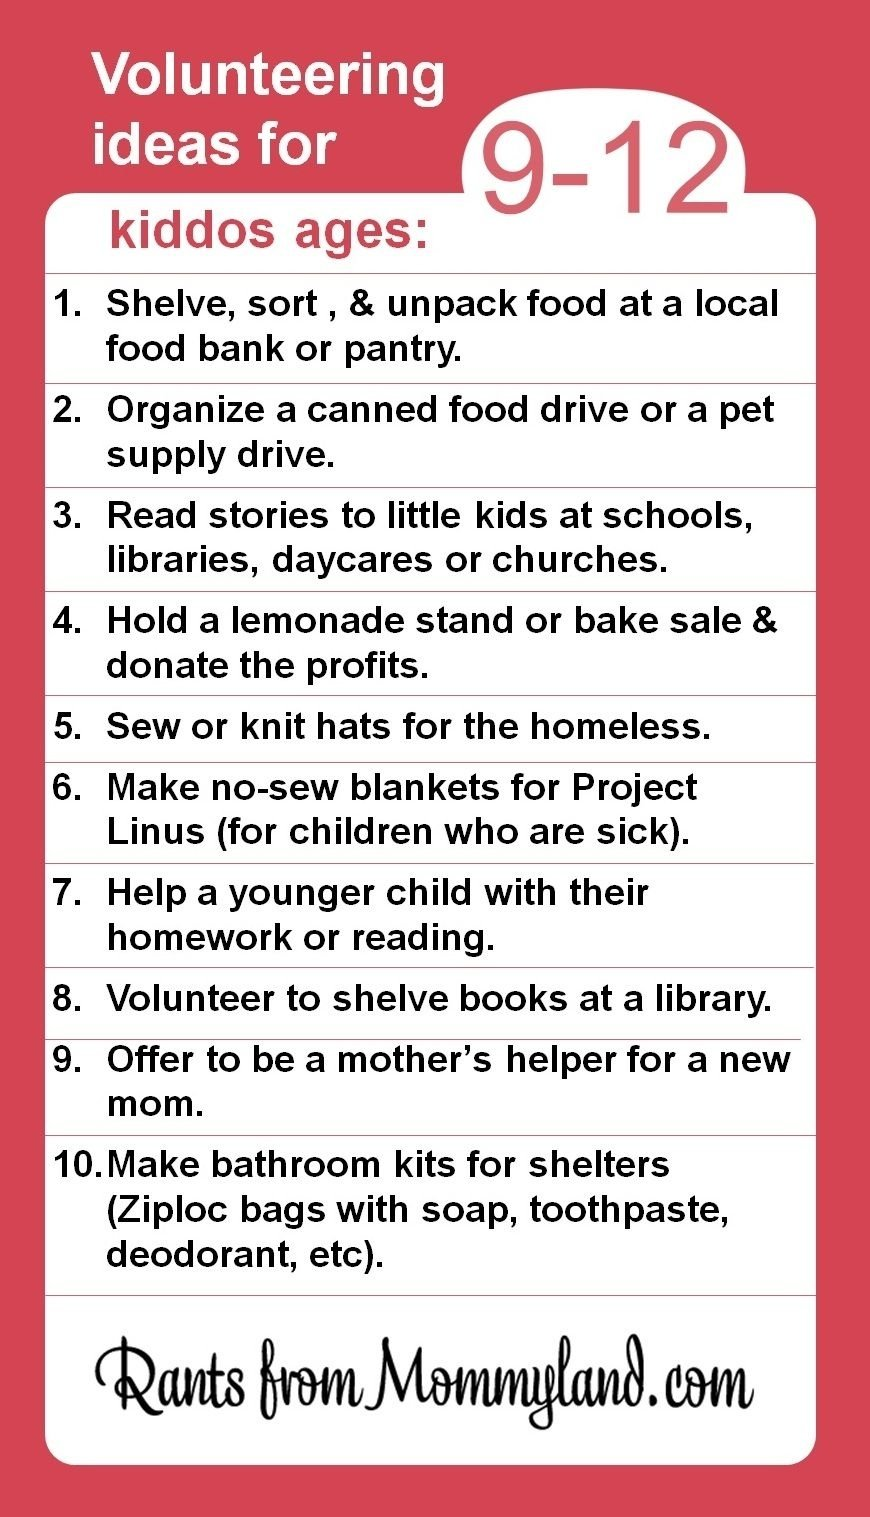 10 Stylish Community Service Ideas For Highschool Students volunteer and service ideas for kiddos ages 9 12 kids can do a lot 6 2020